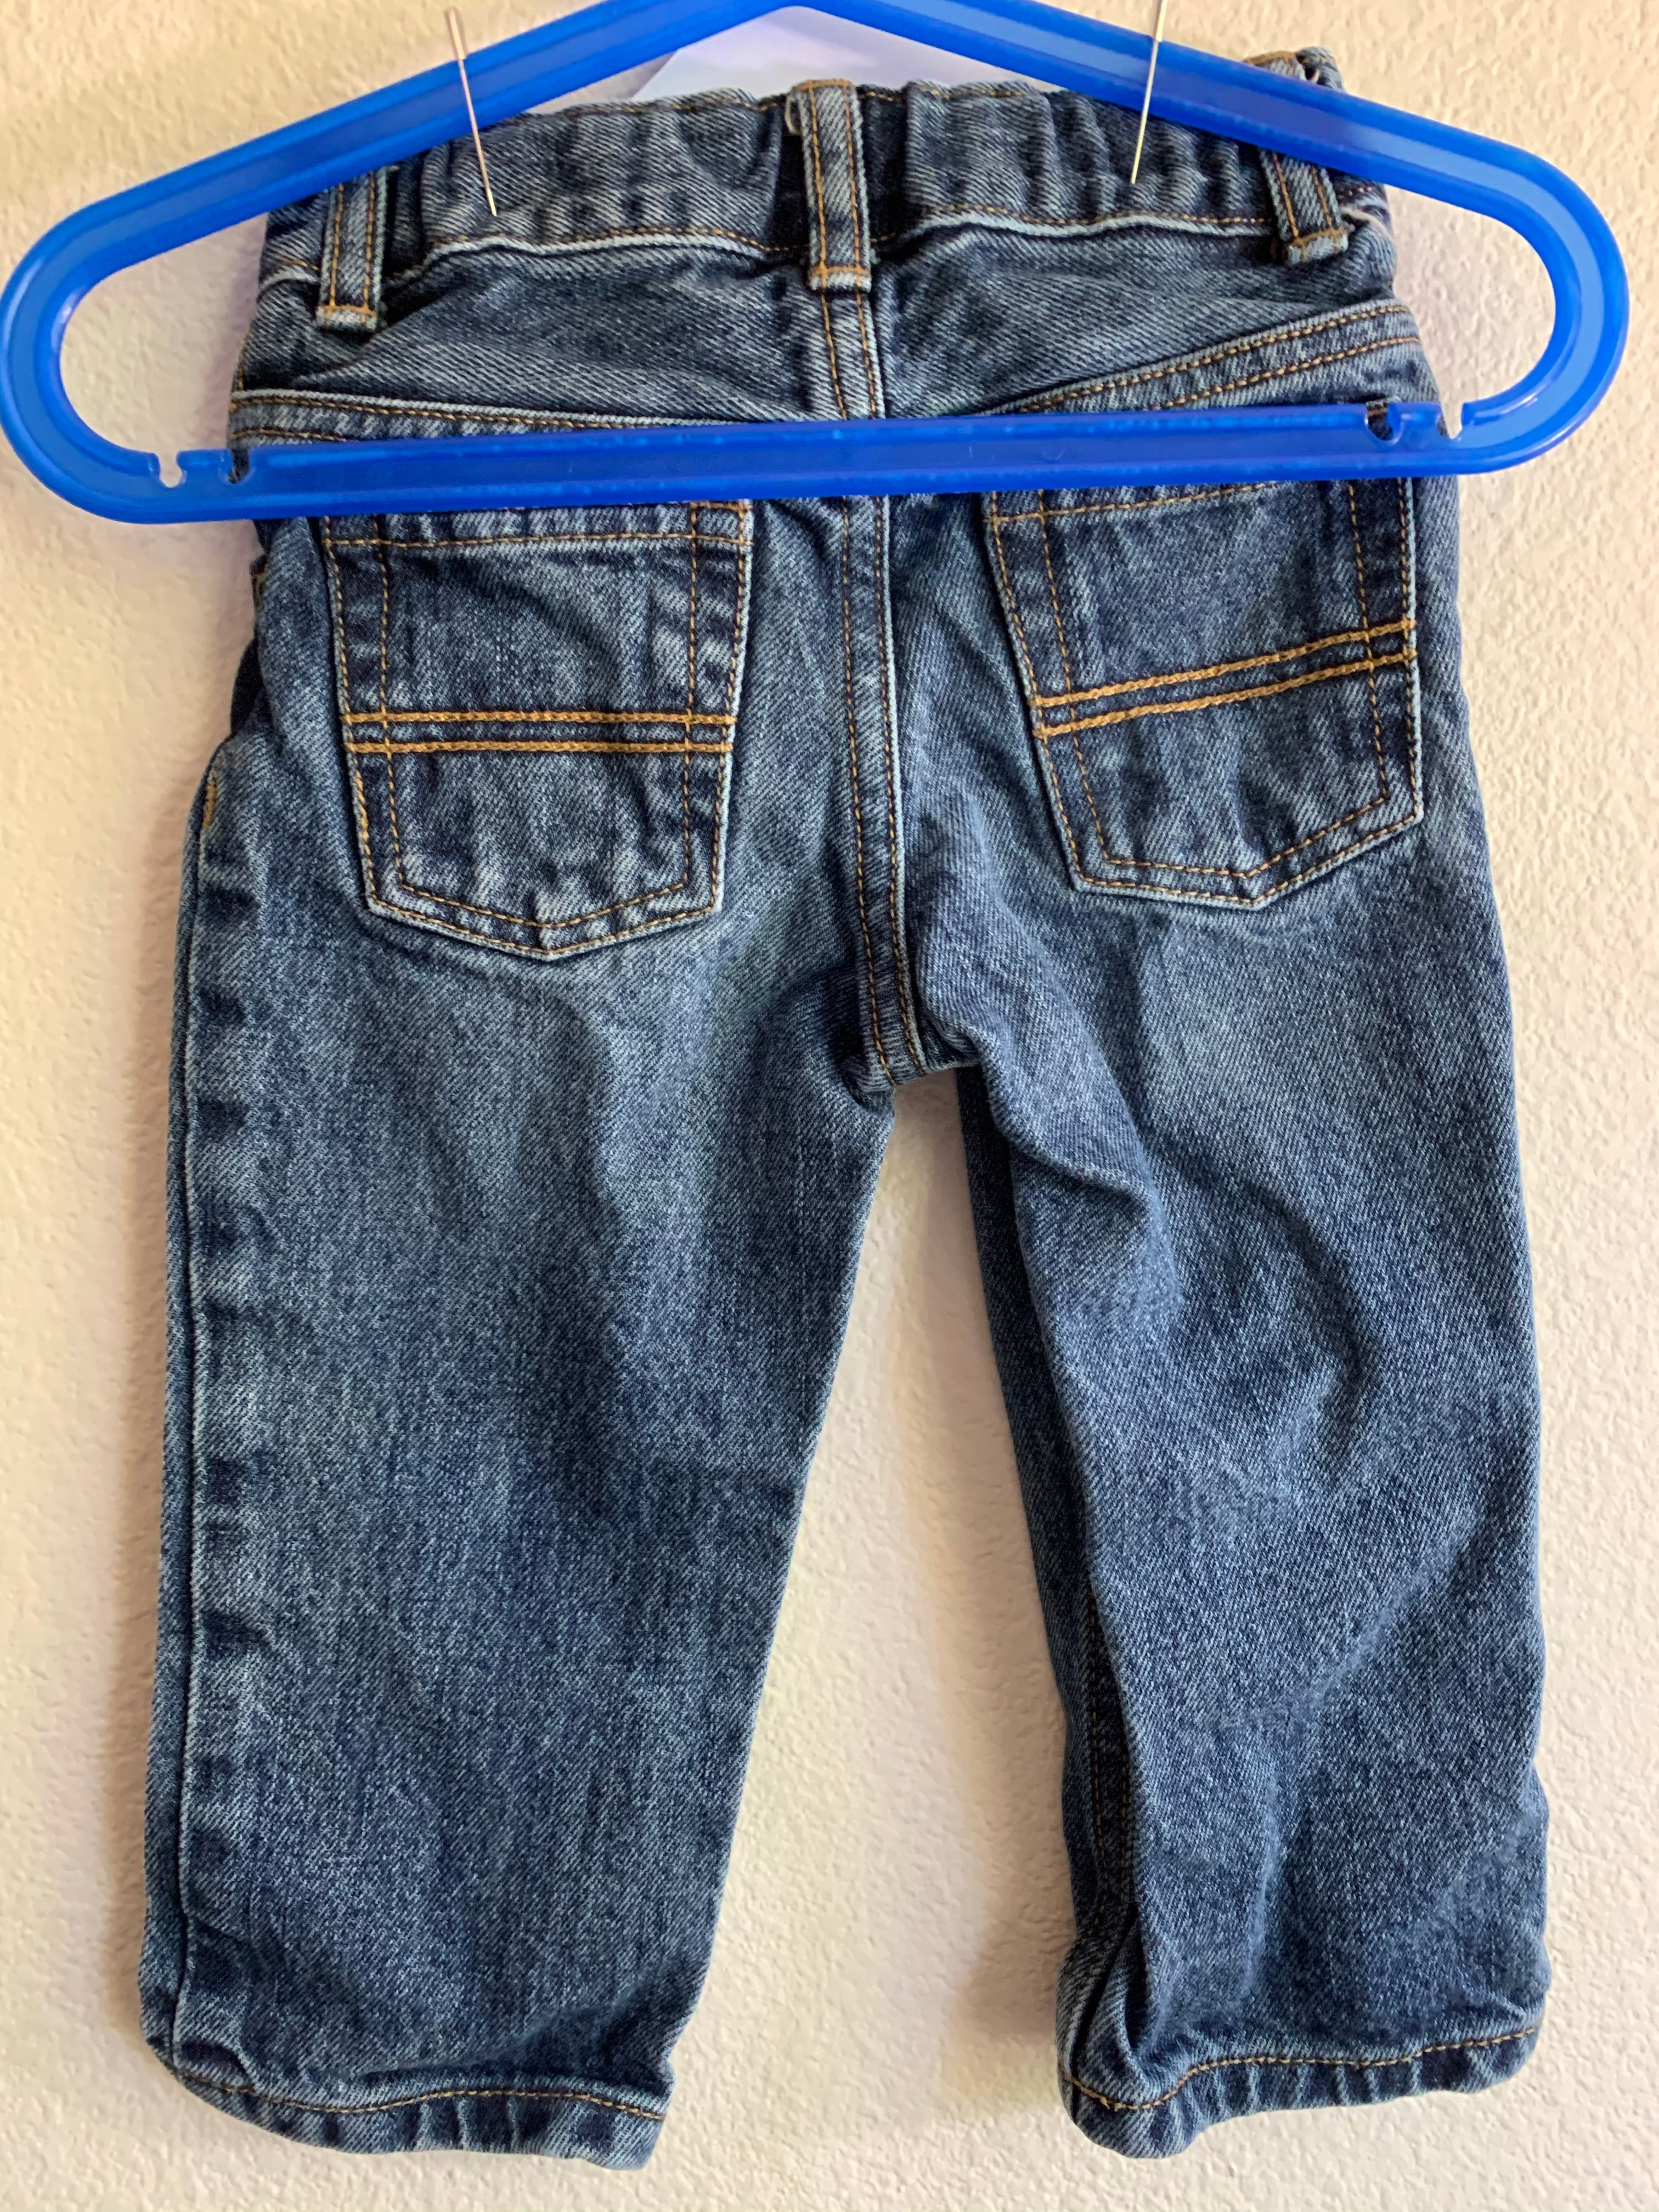 CARTER'S Boy's Size 18 Month Jeans